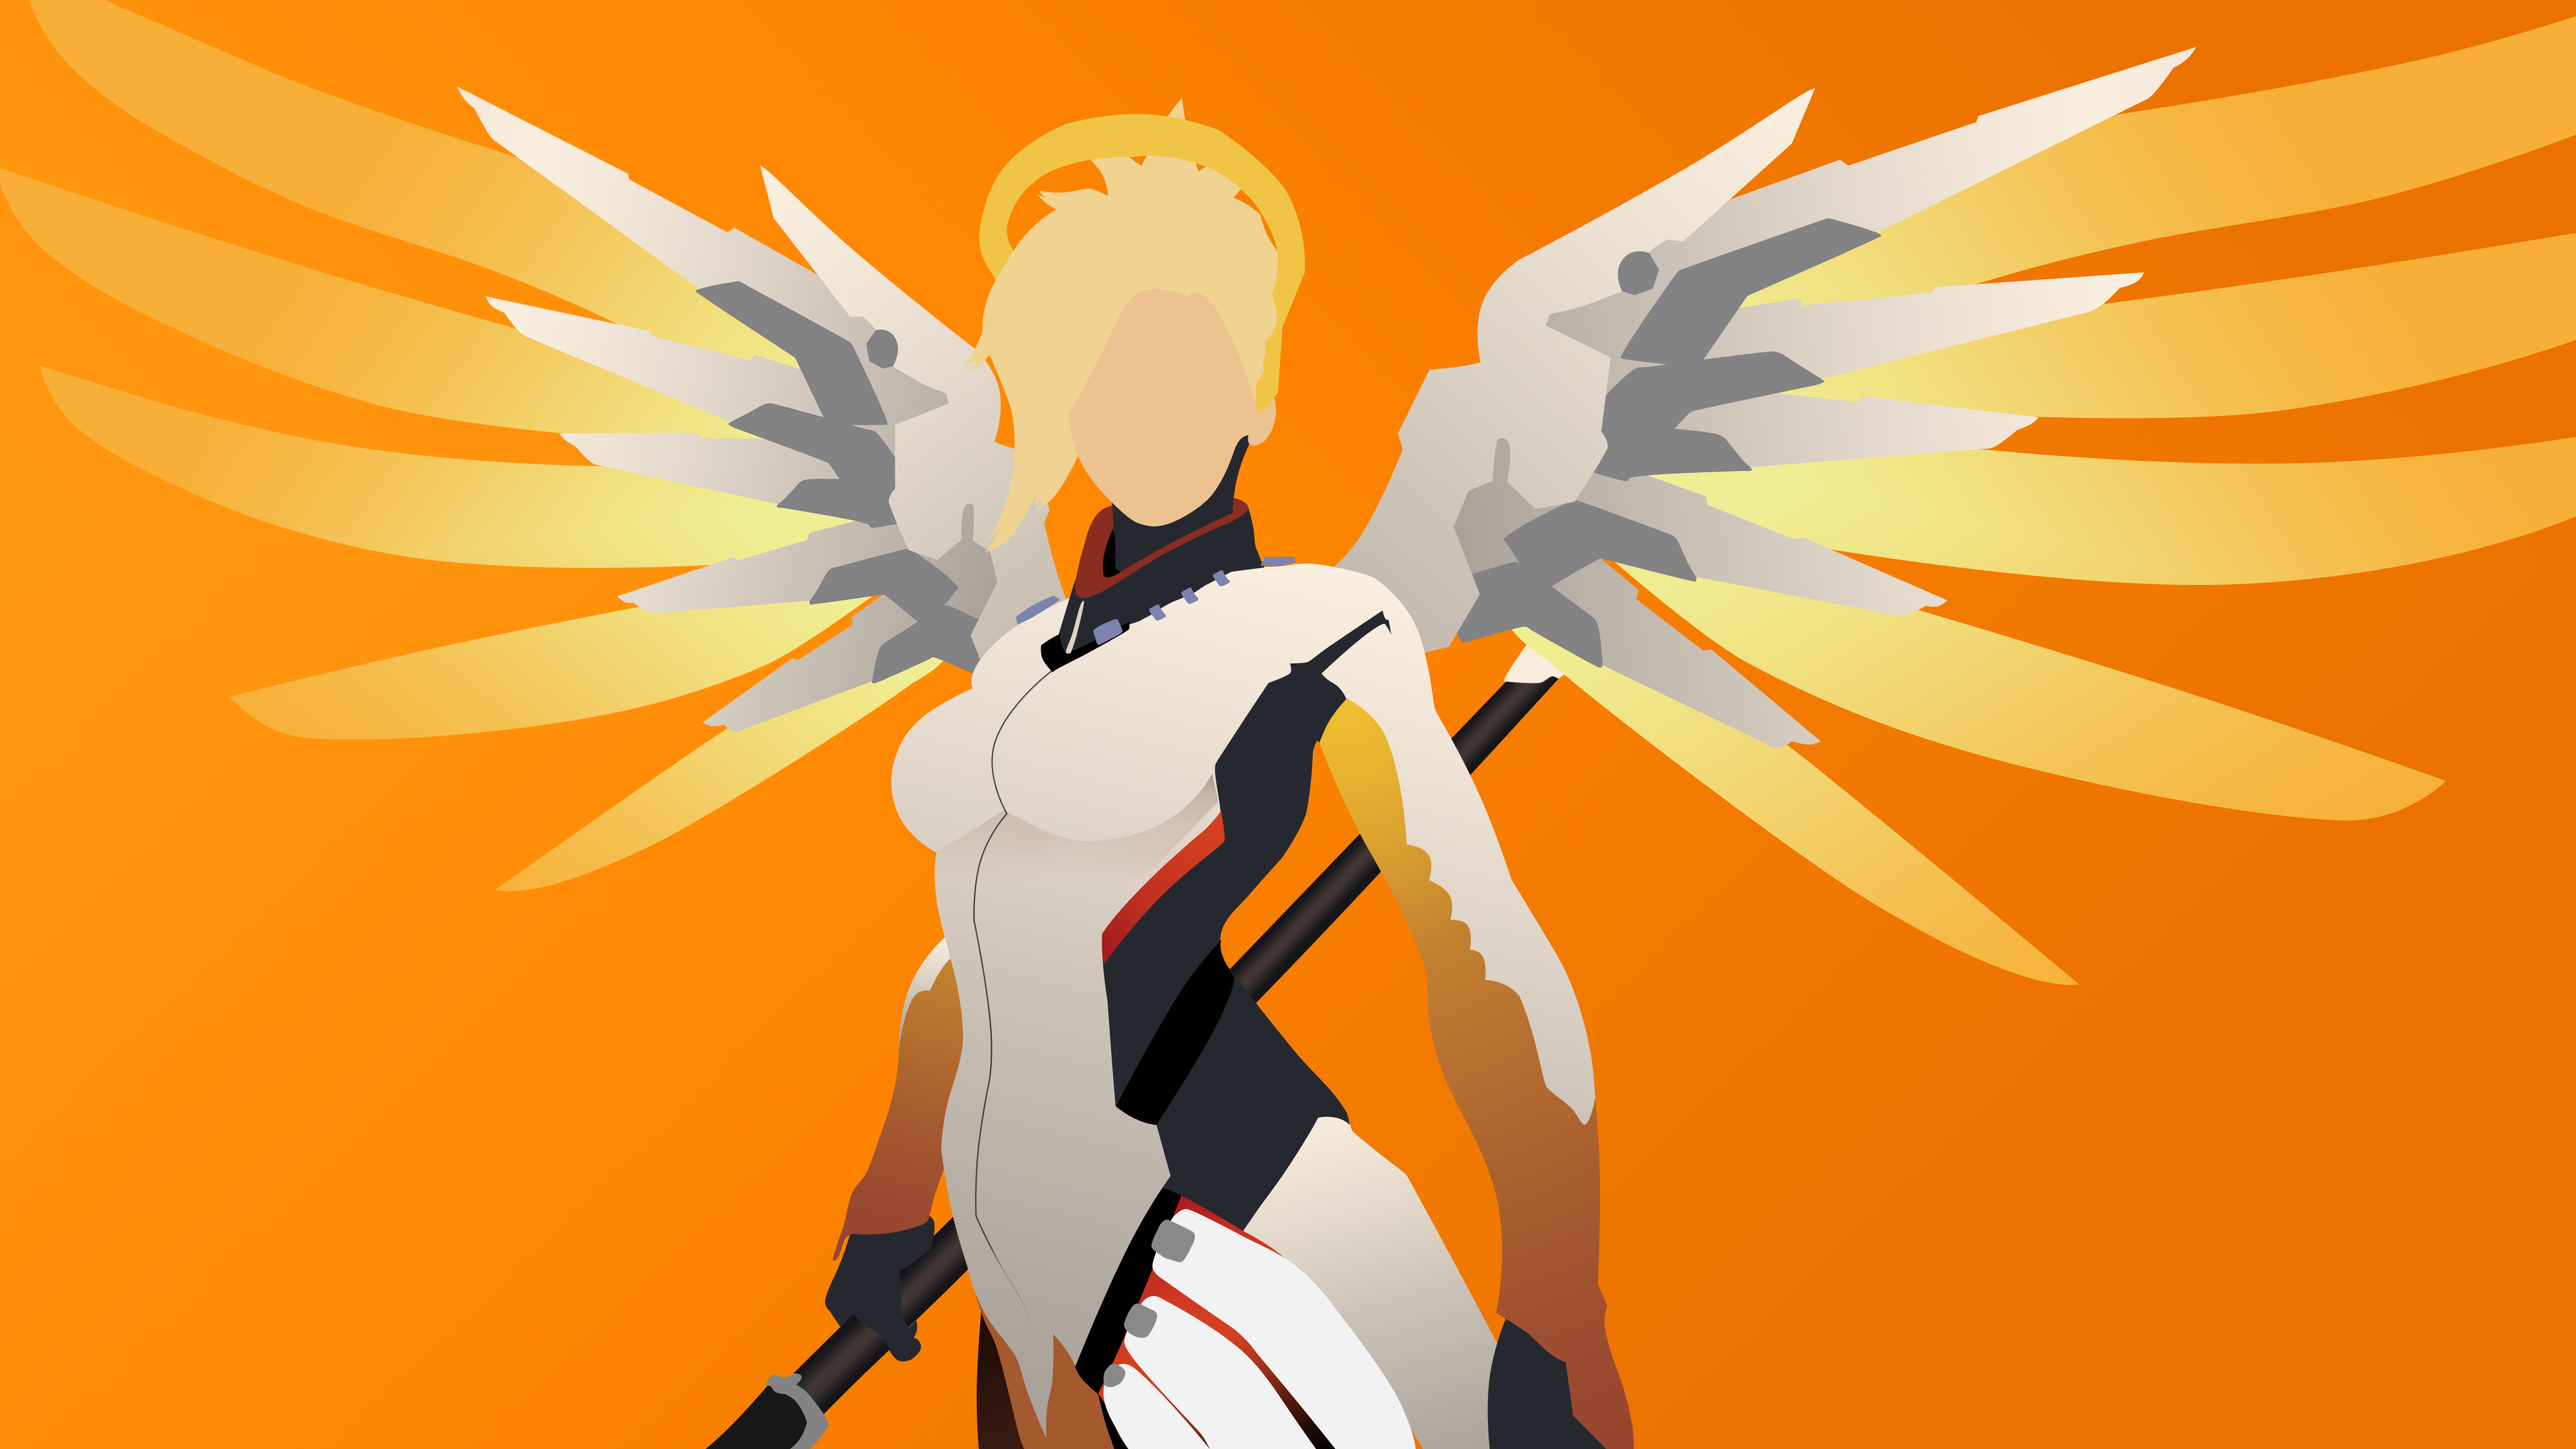 Mercy clipart overwatch vector royalty free download Mercy - Overwatch by The-Epic-Guy on DeviantArt vector royalty free download